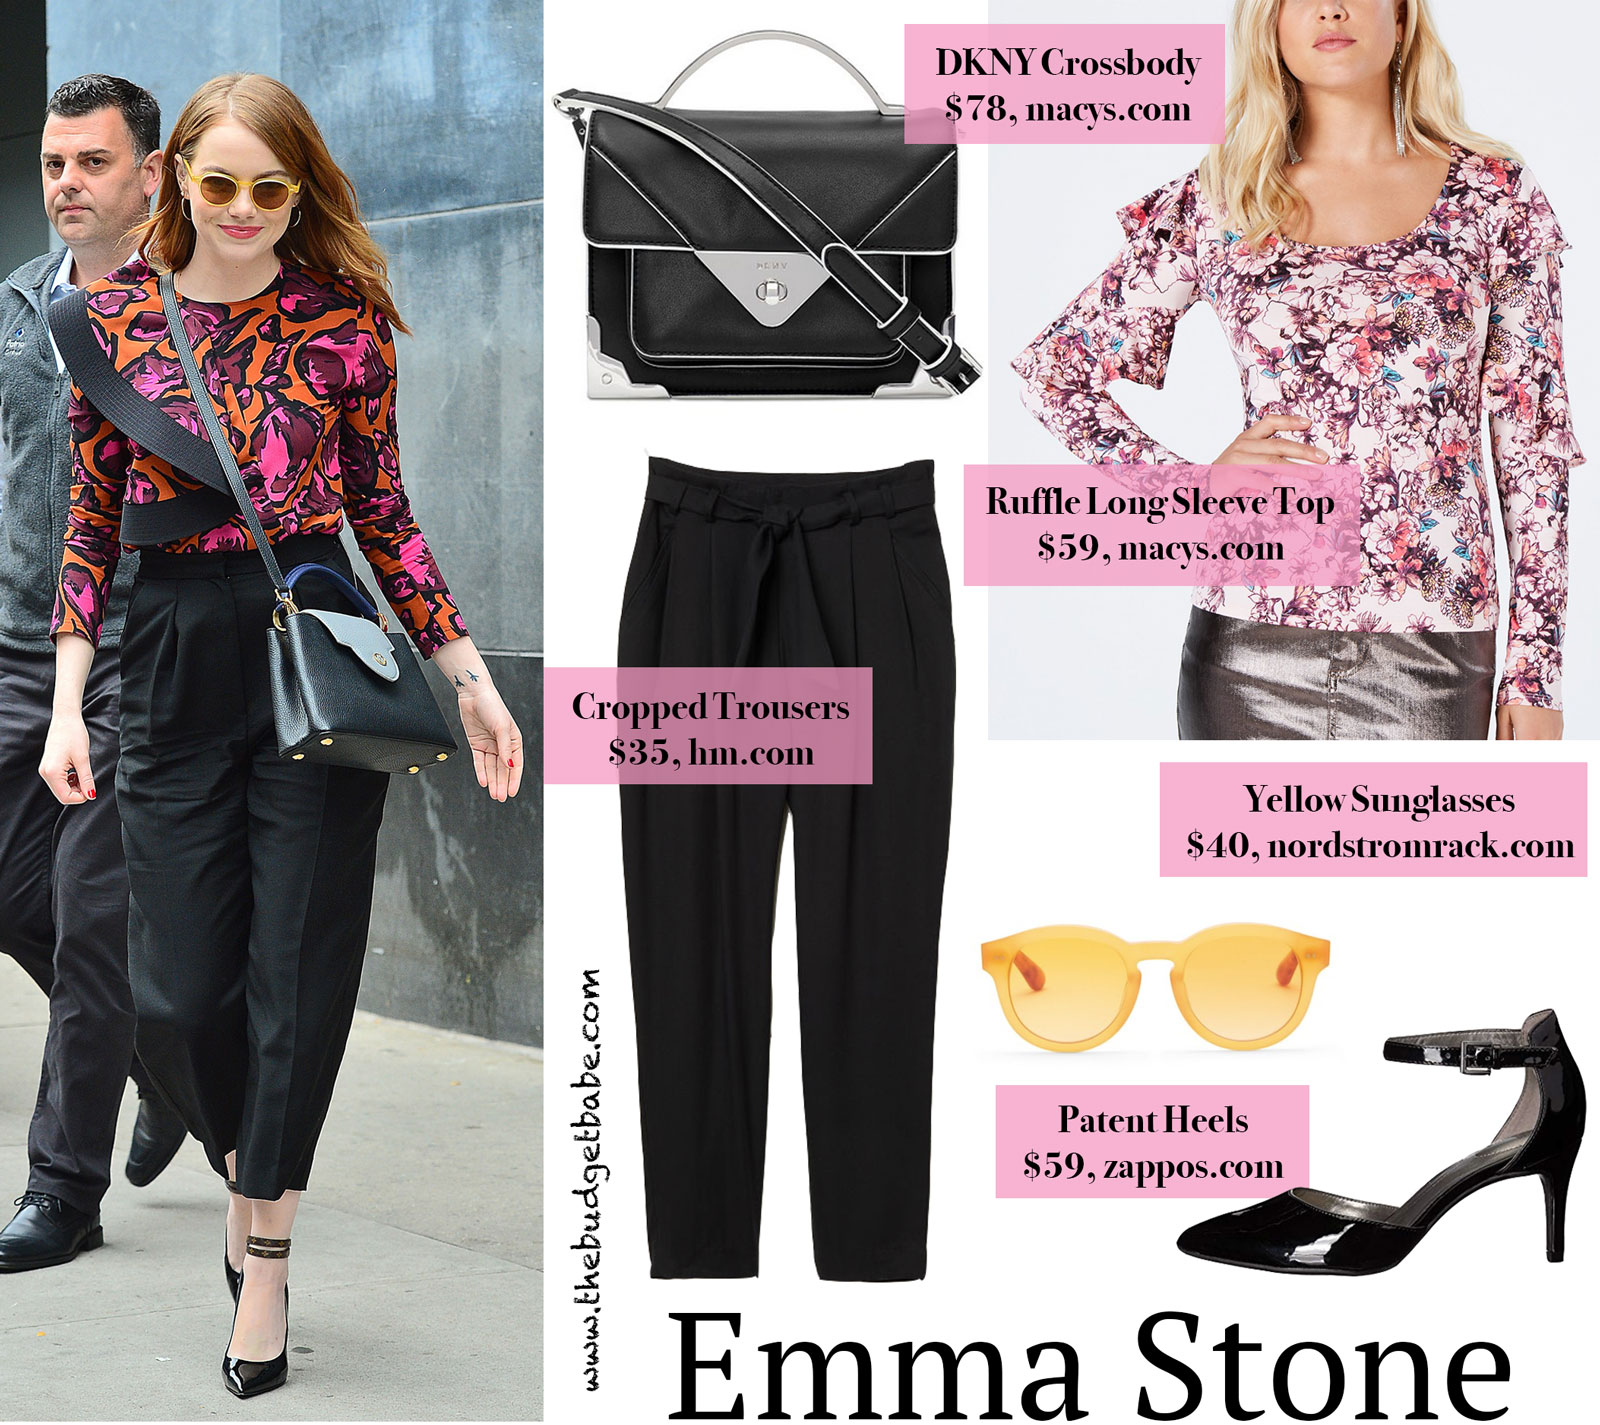 Emma Stone Ruffle Top and Black Trousers Look for Less